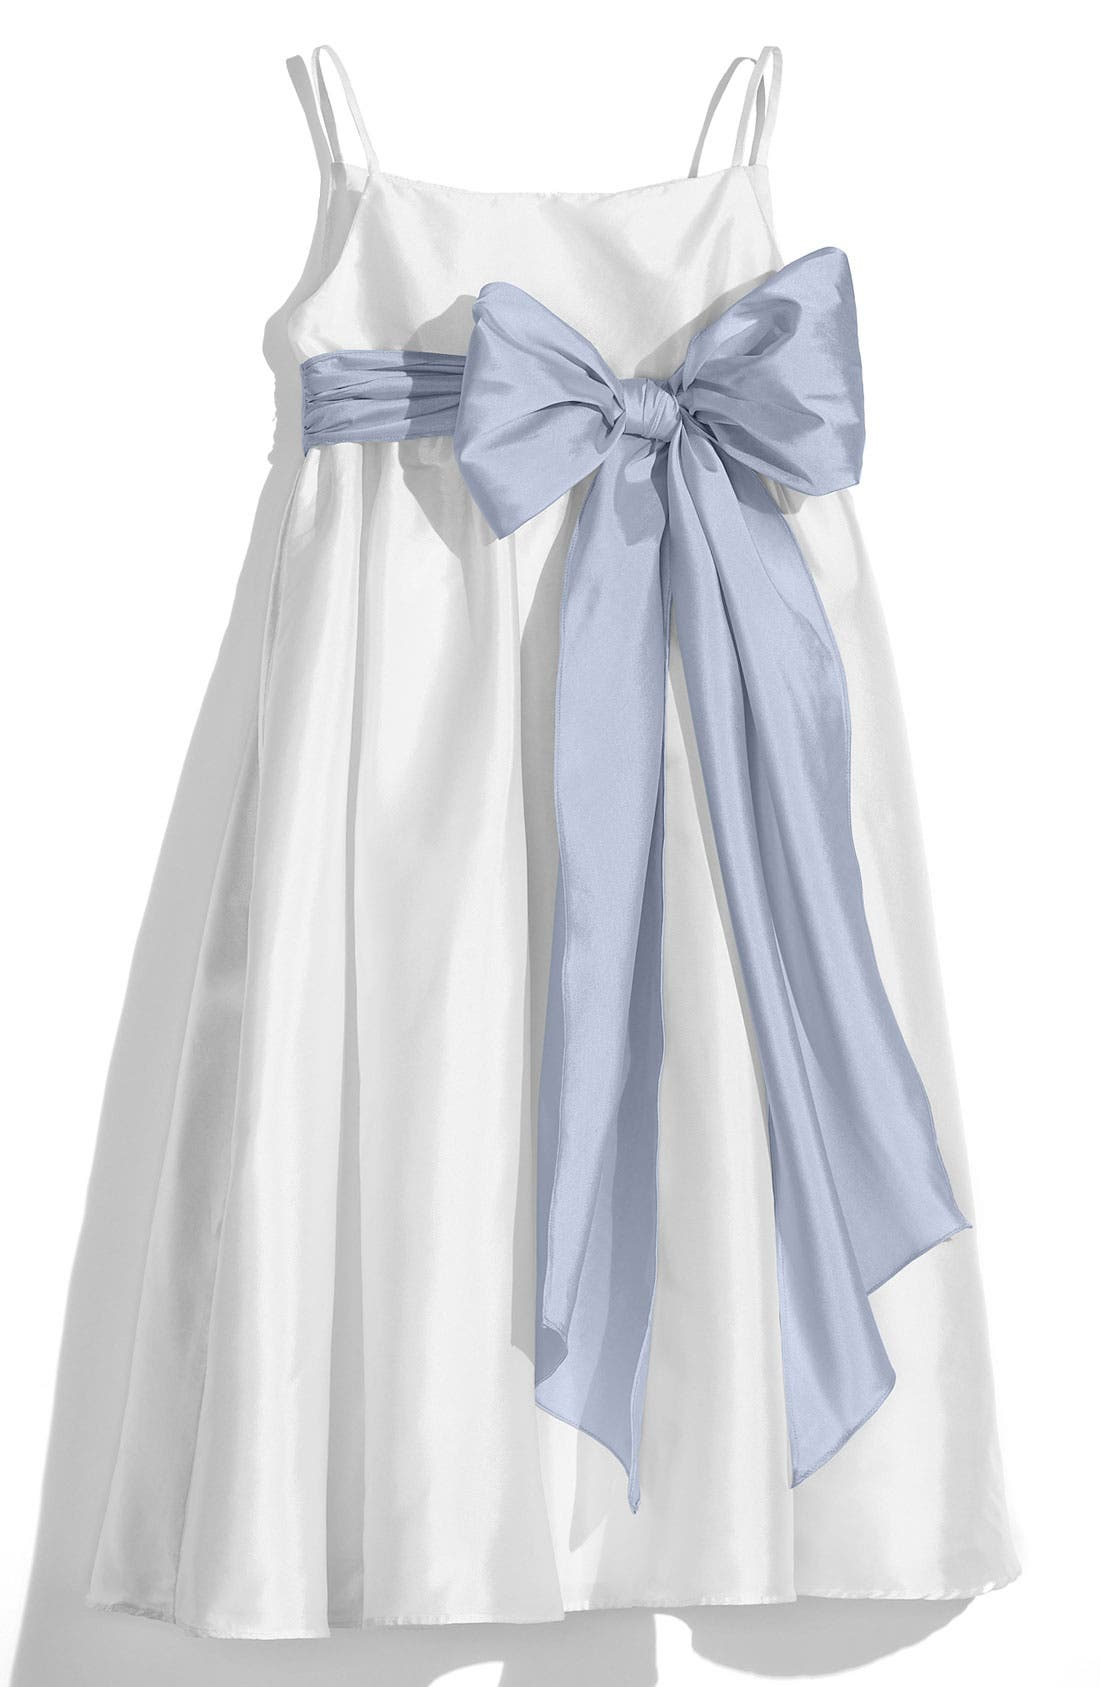 White Sleeveless Empire Waist Taffeta Dress,                         Main,                         color, White/ Pewter